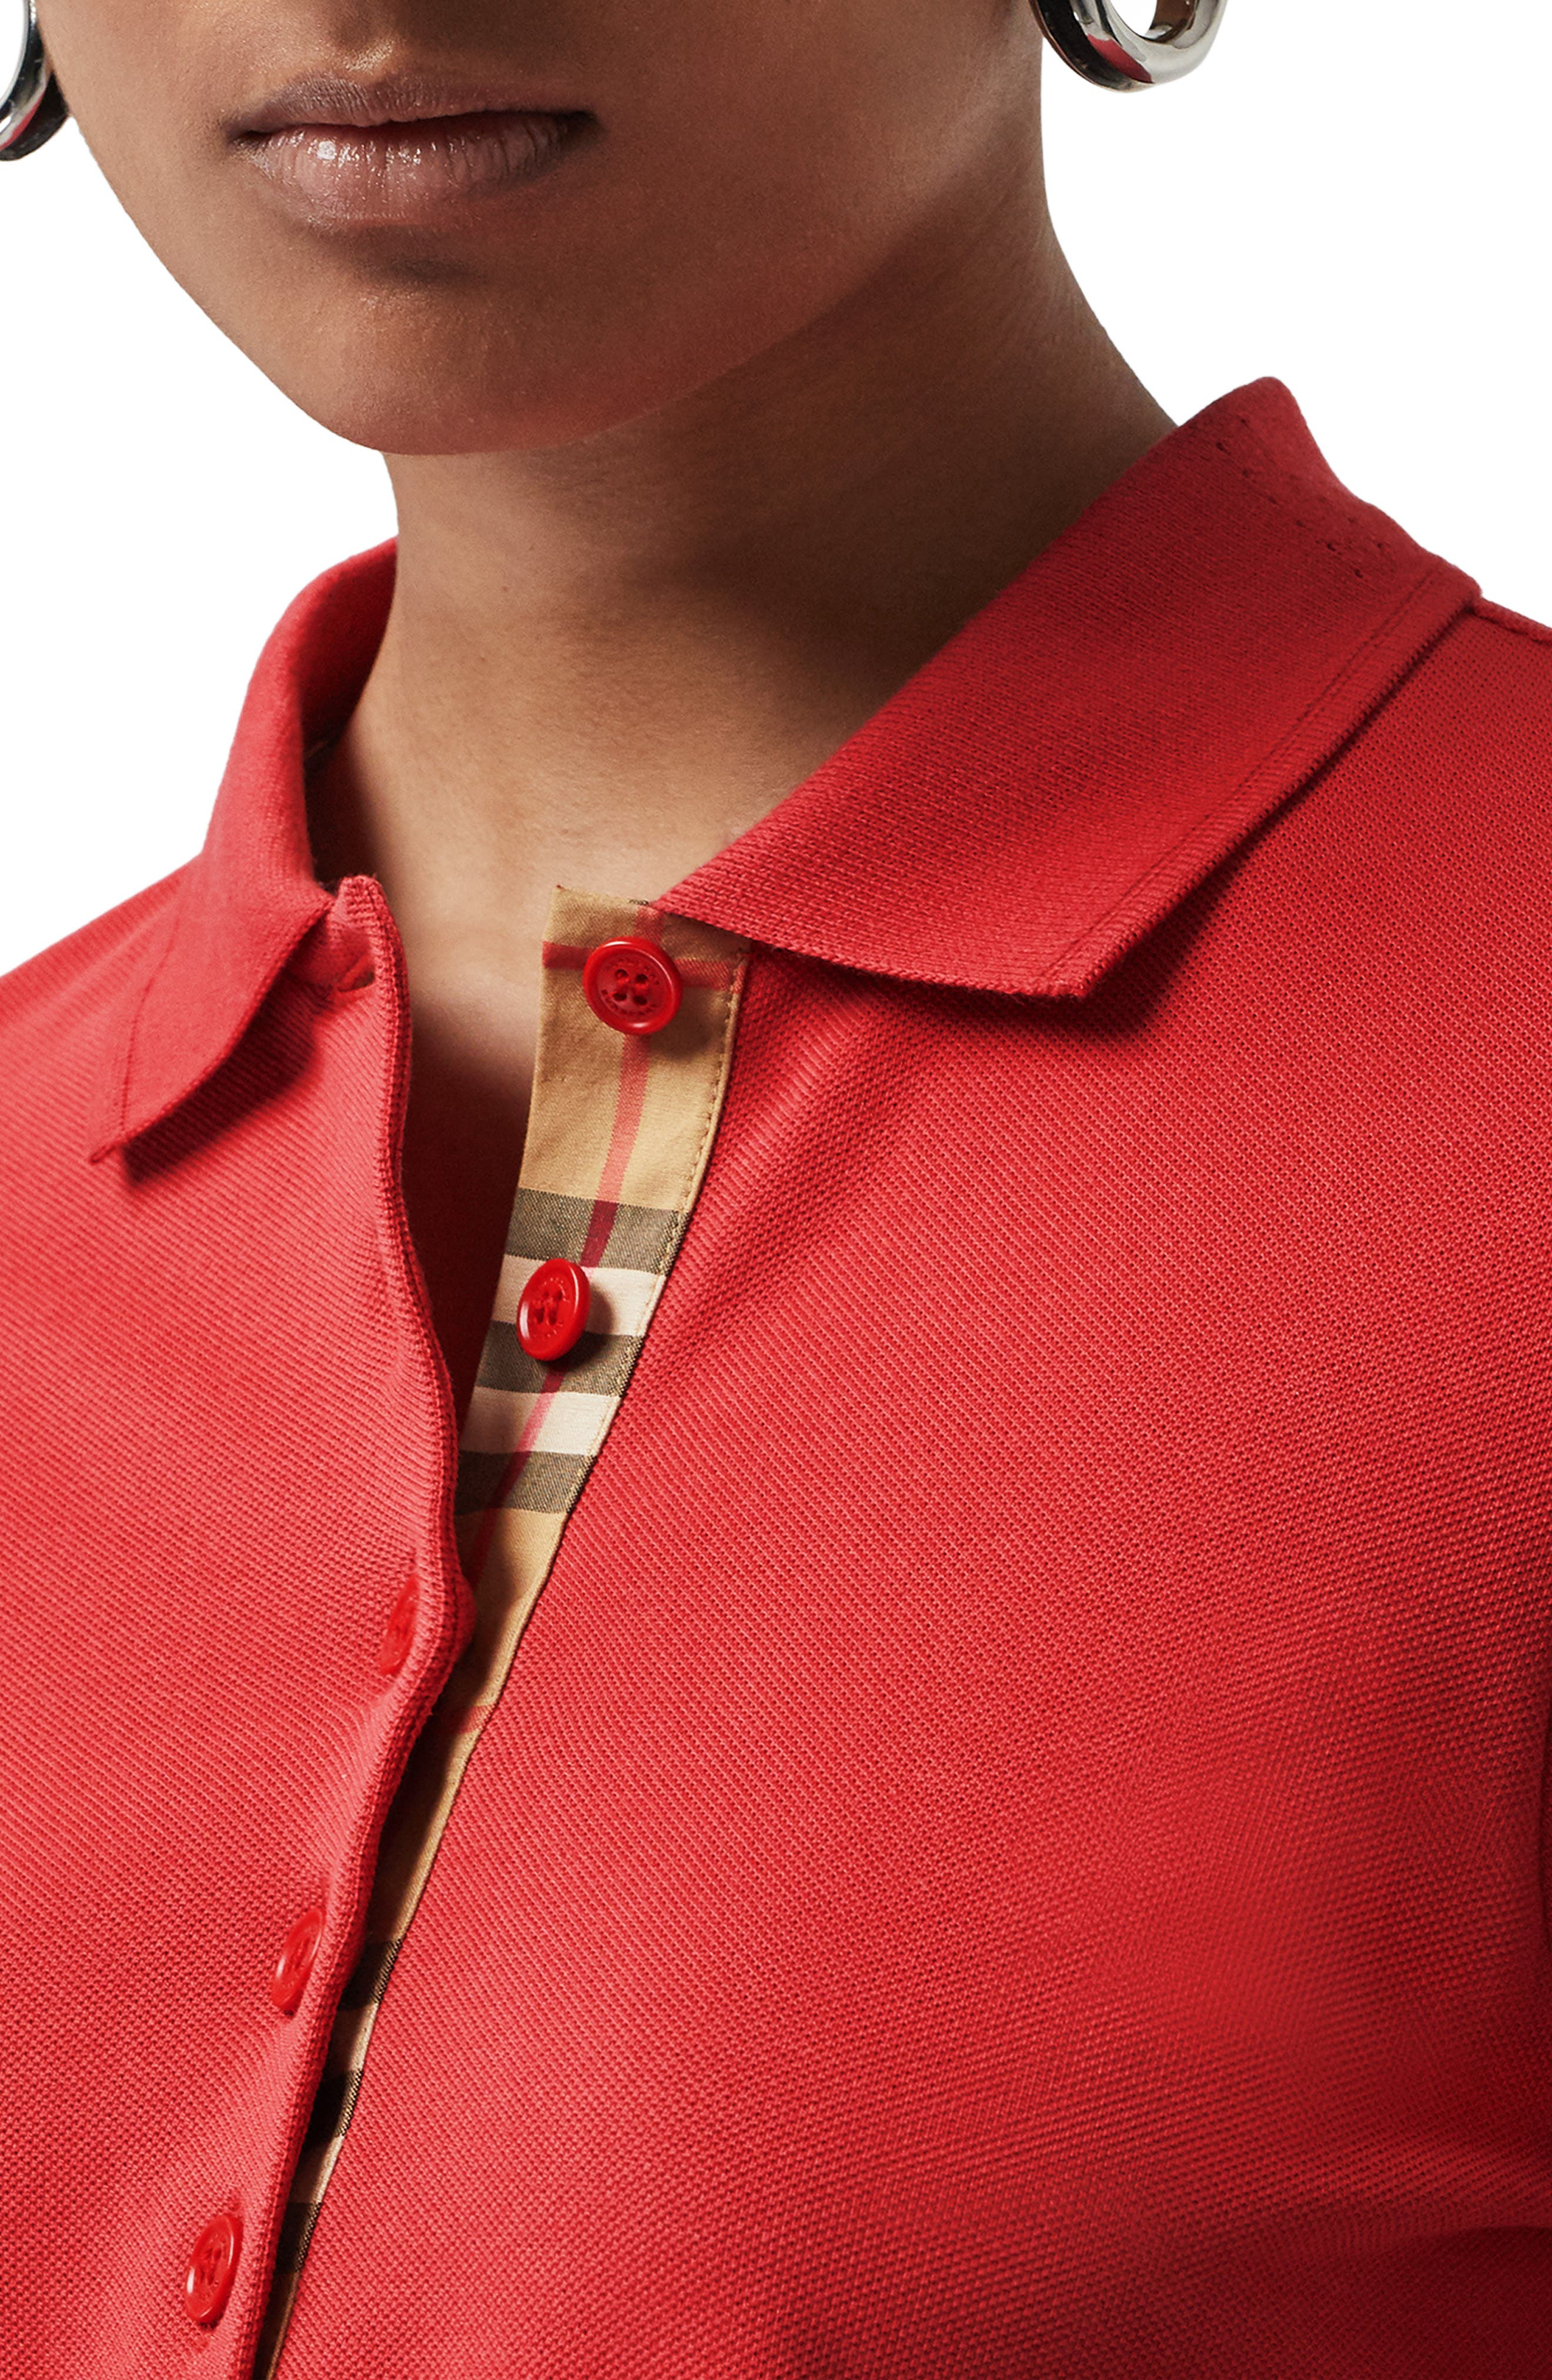 Zulia Polo Shirt,                             Alternate thumbnail 3, color,                             BRIGHT RED